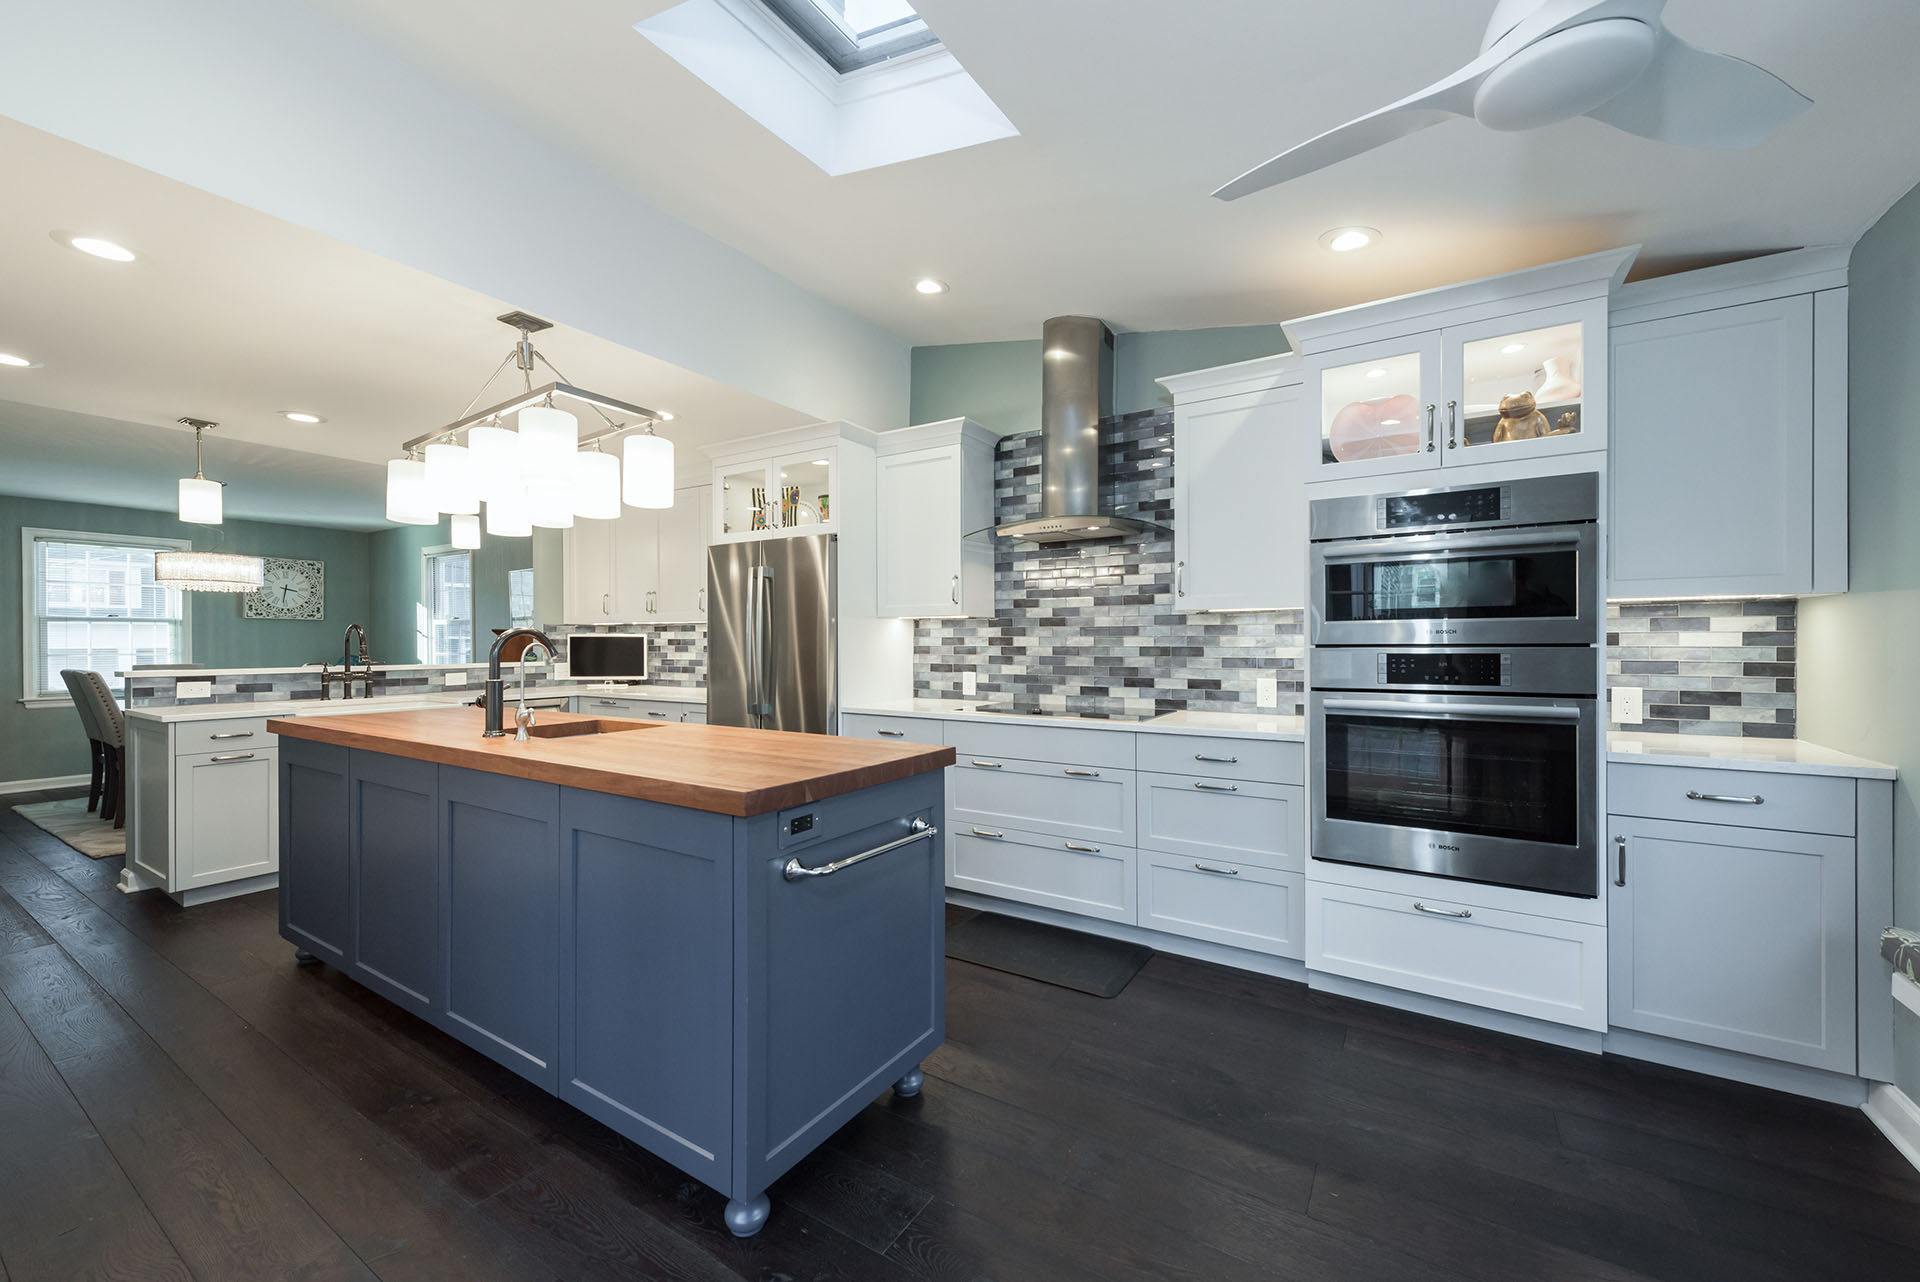 joan bigg kitchen design contemporary farmhouse kitchen fairfield county ct